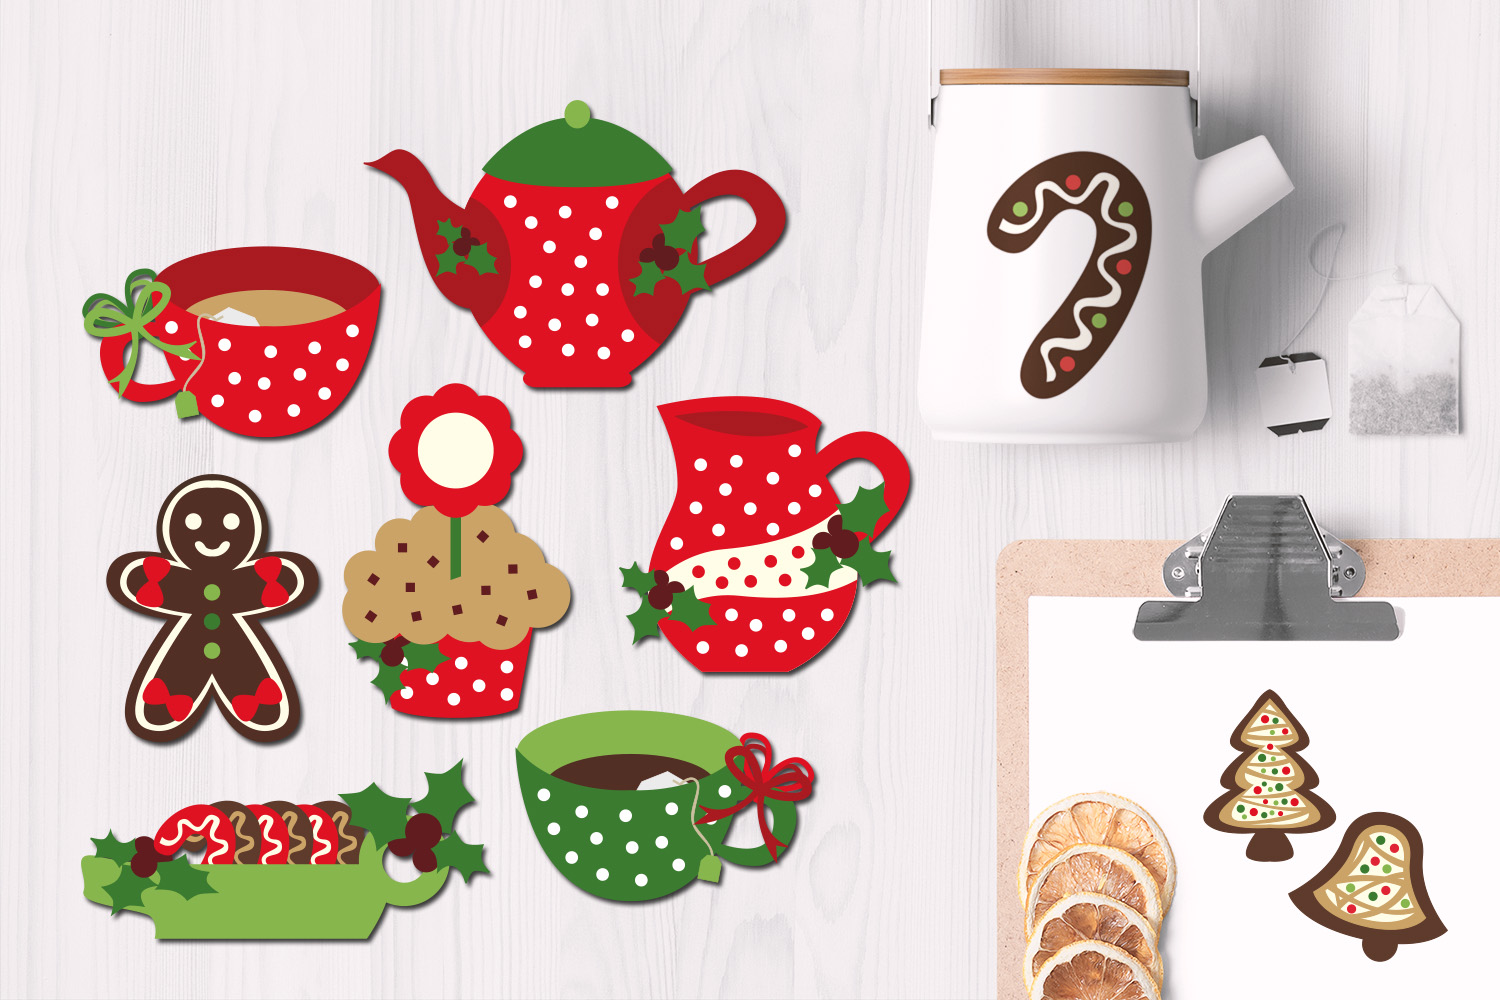 Download Free Christmas Tea Party With Gingerbread Cookies Graphic By Revidevi for Cricut Explore, Silhouette and other cutting machines.